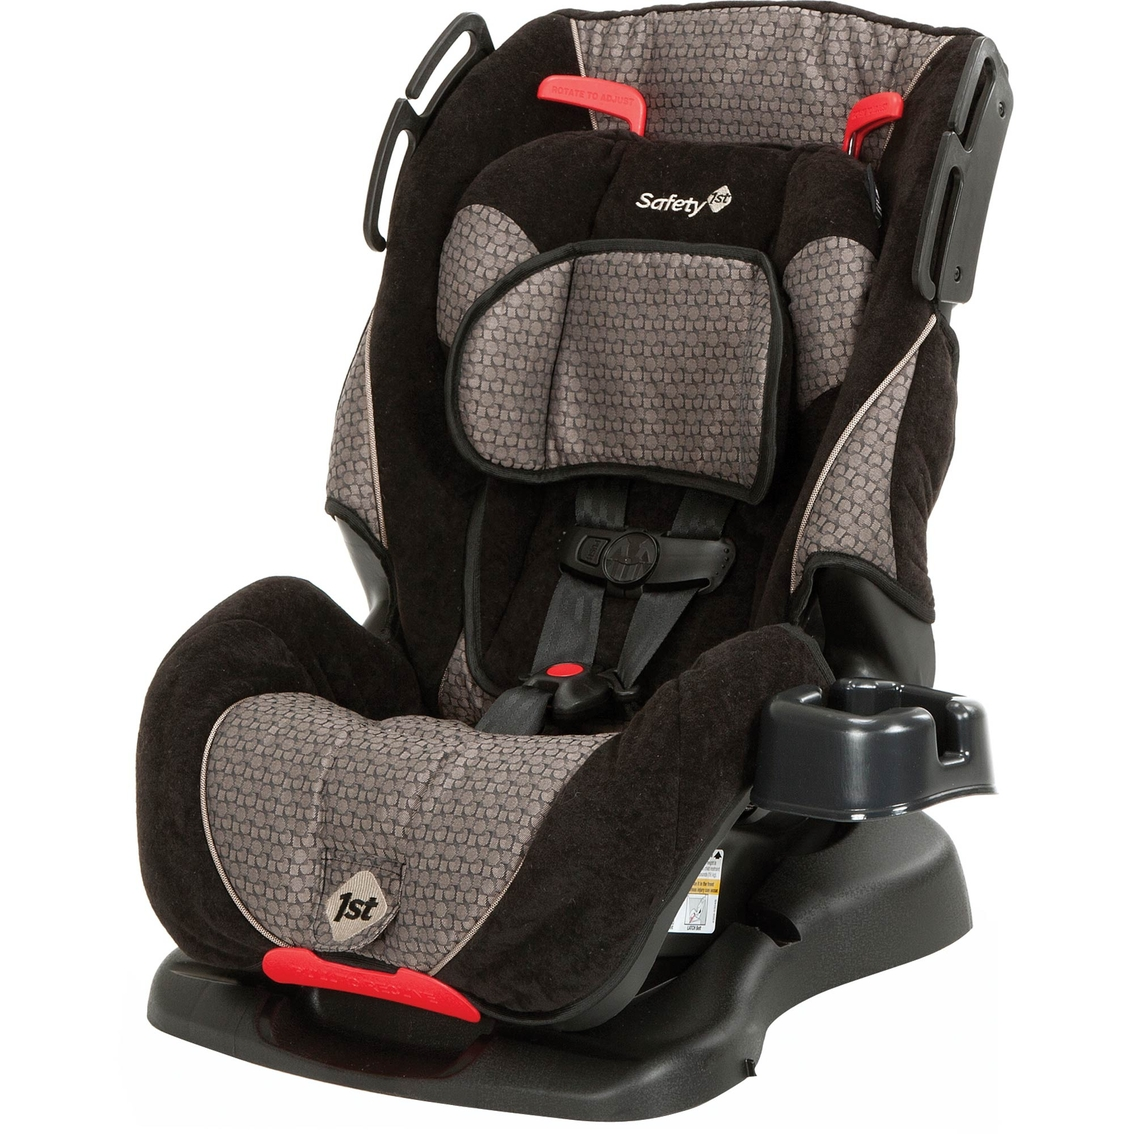 safety 1st all in one convertible car seat convertible seats baby toys shop the exchange. Black Bedroom Furniture Sets. Home Design Ideas